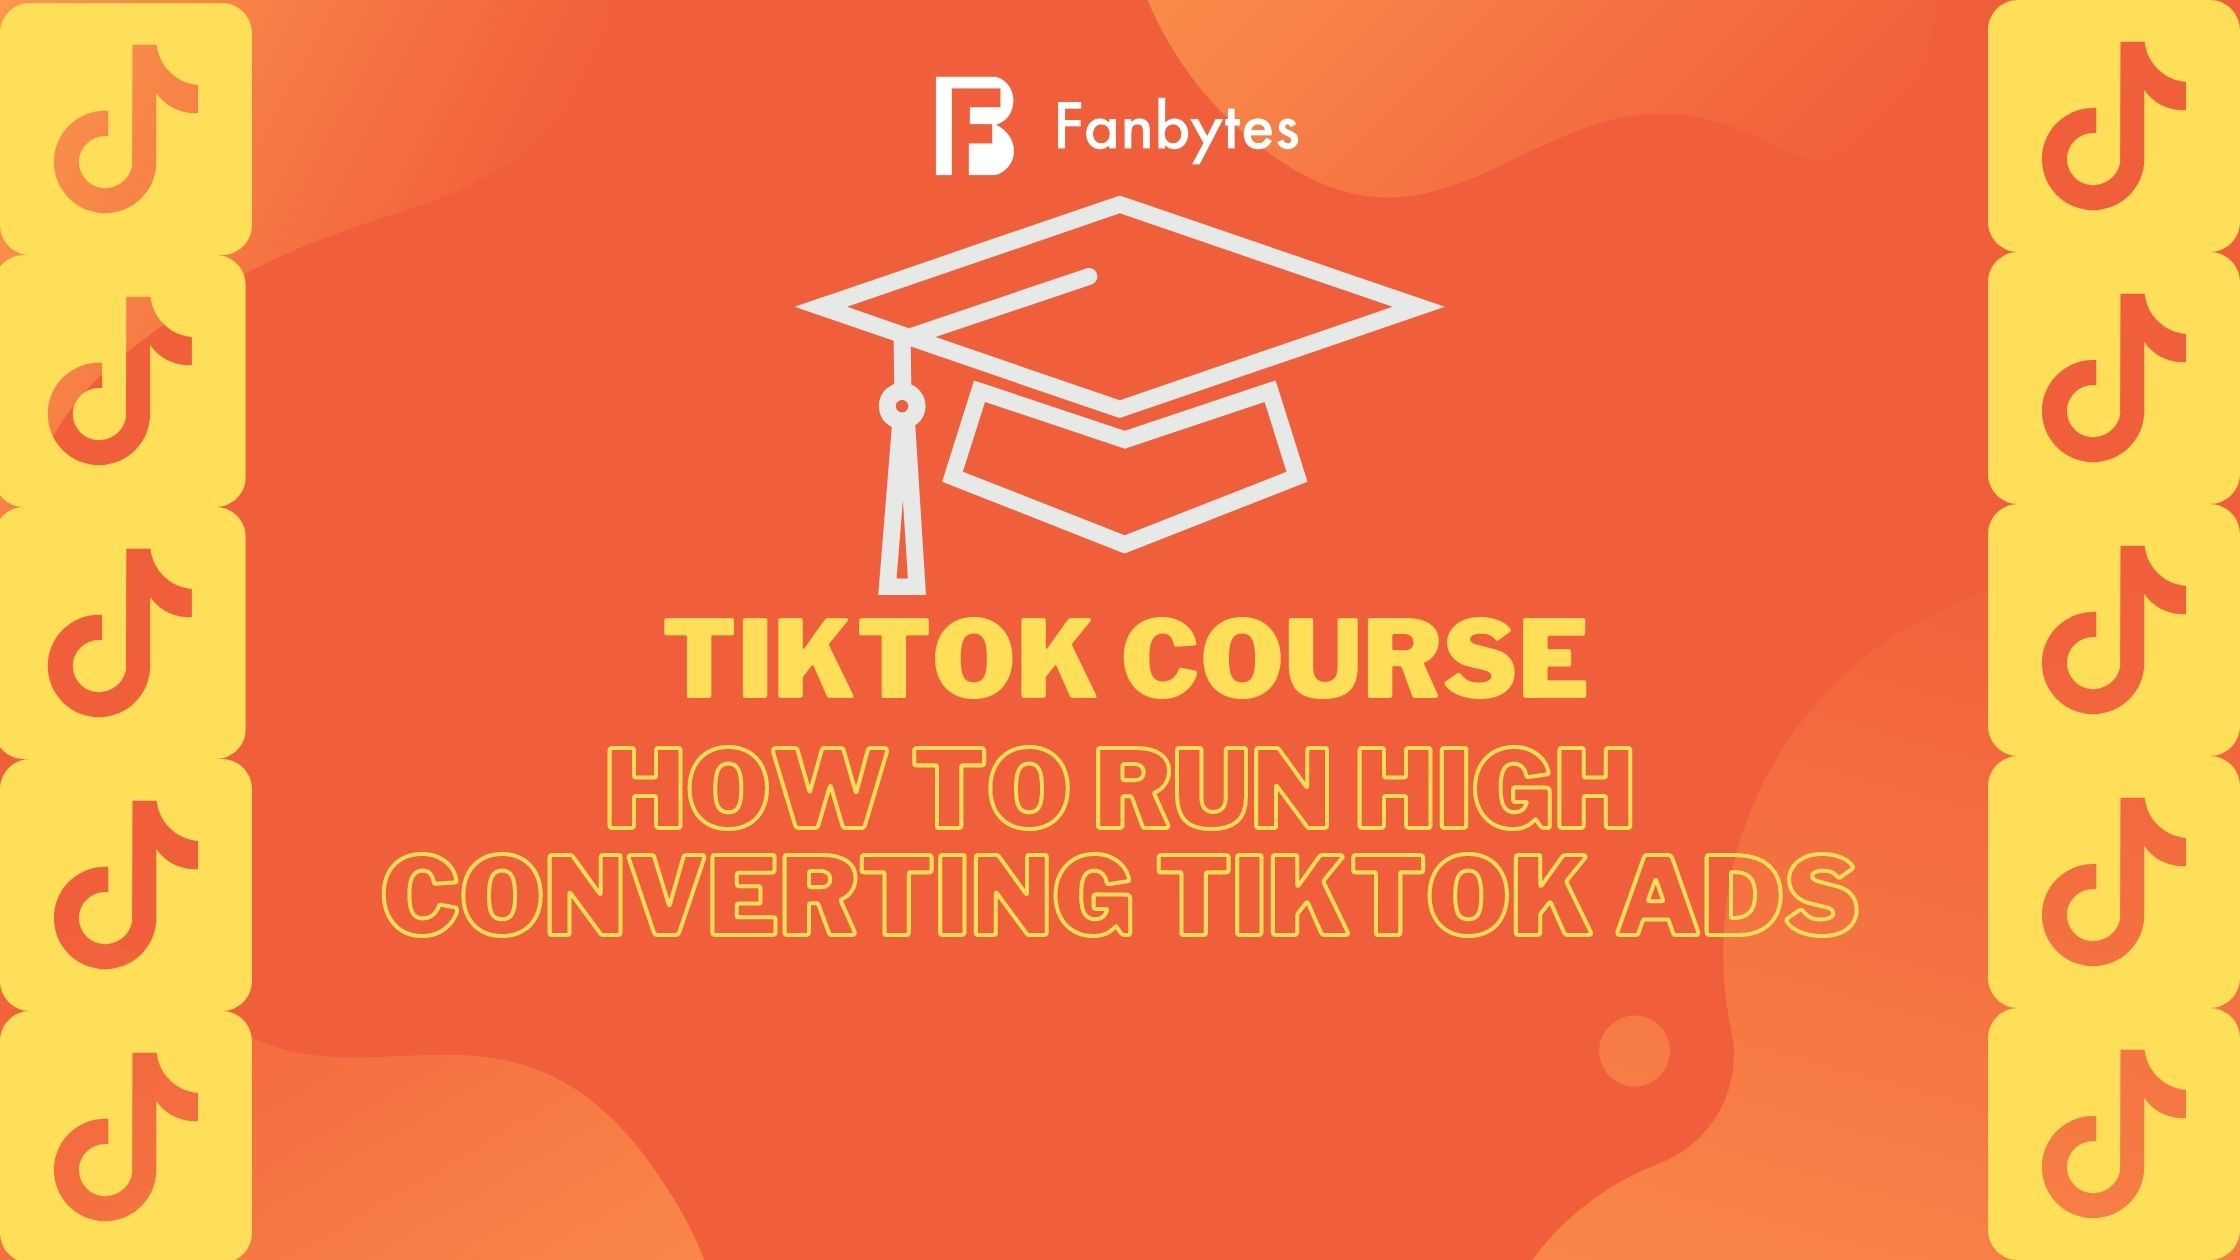 run-tiktok-ads